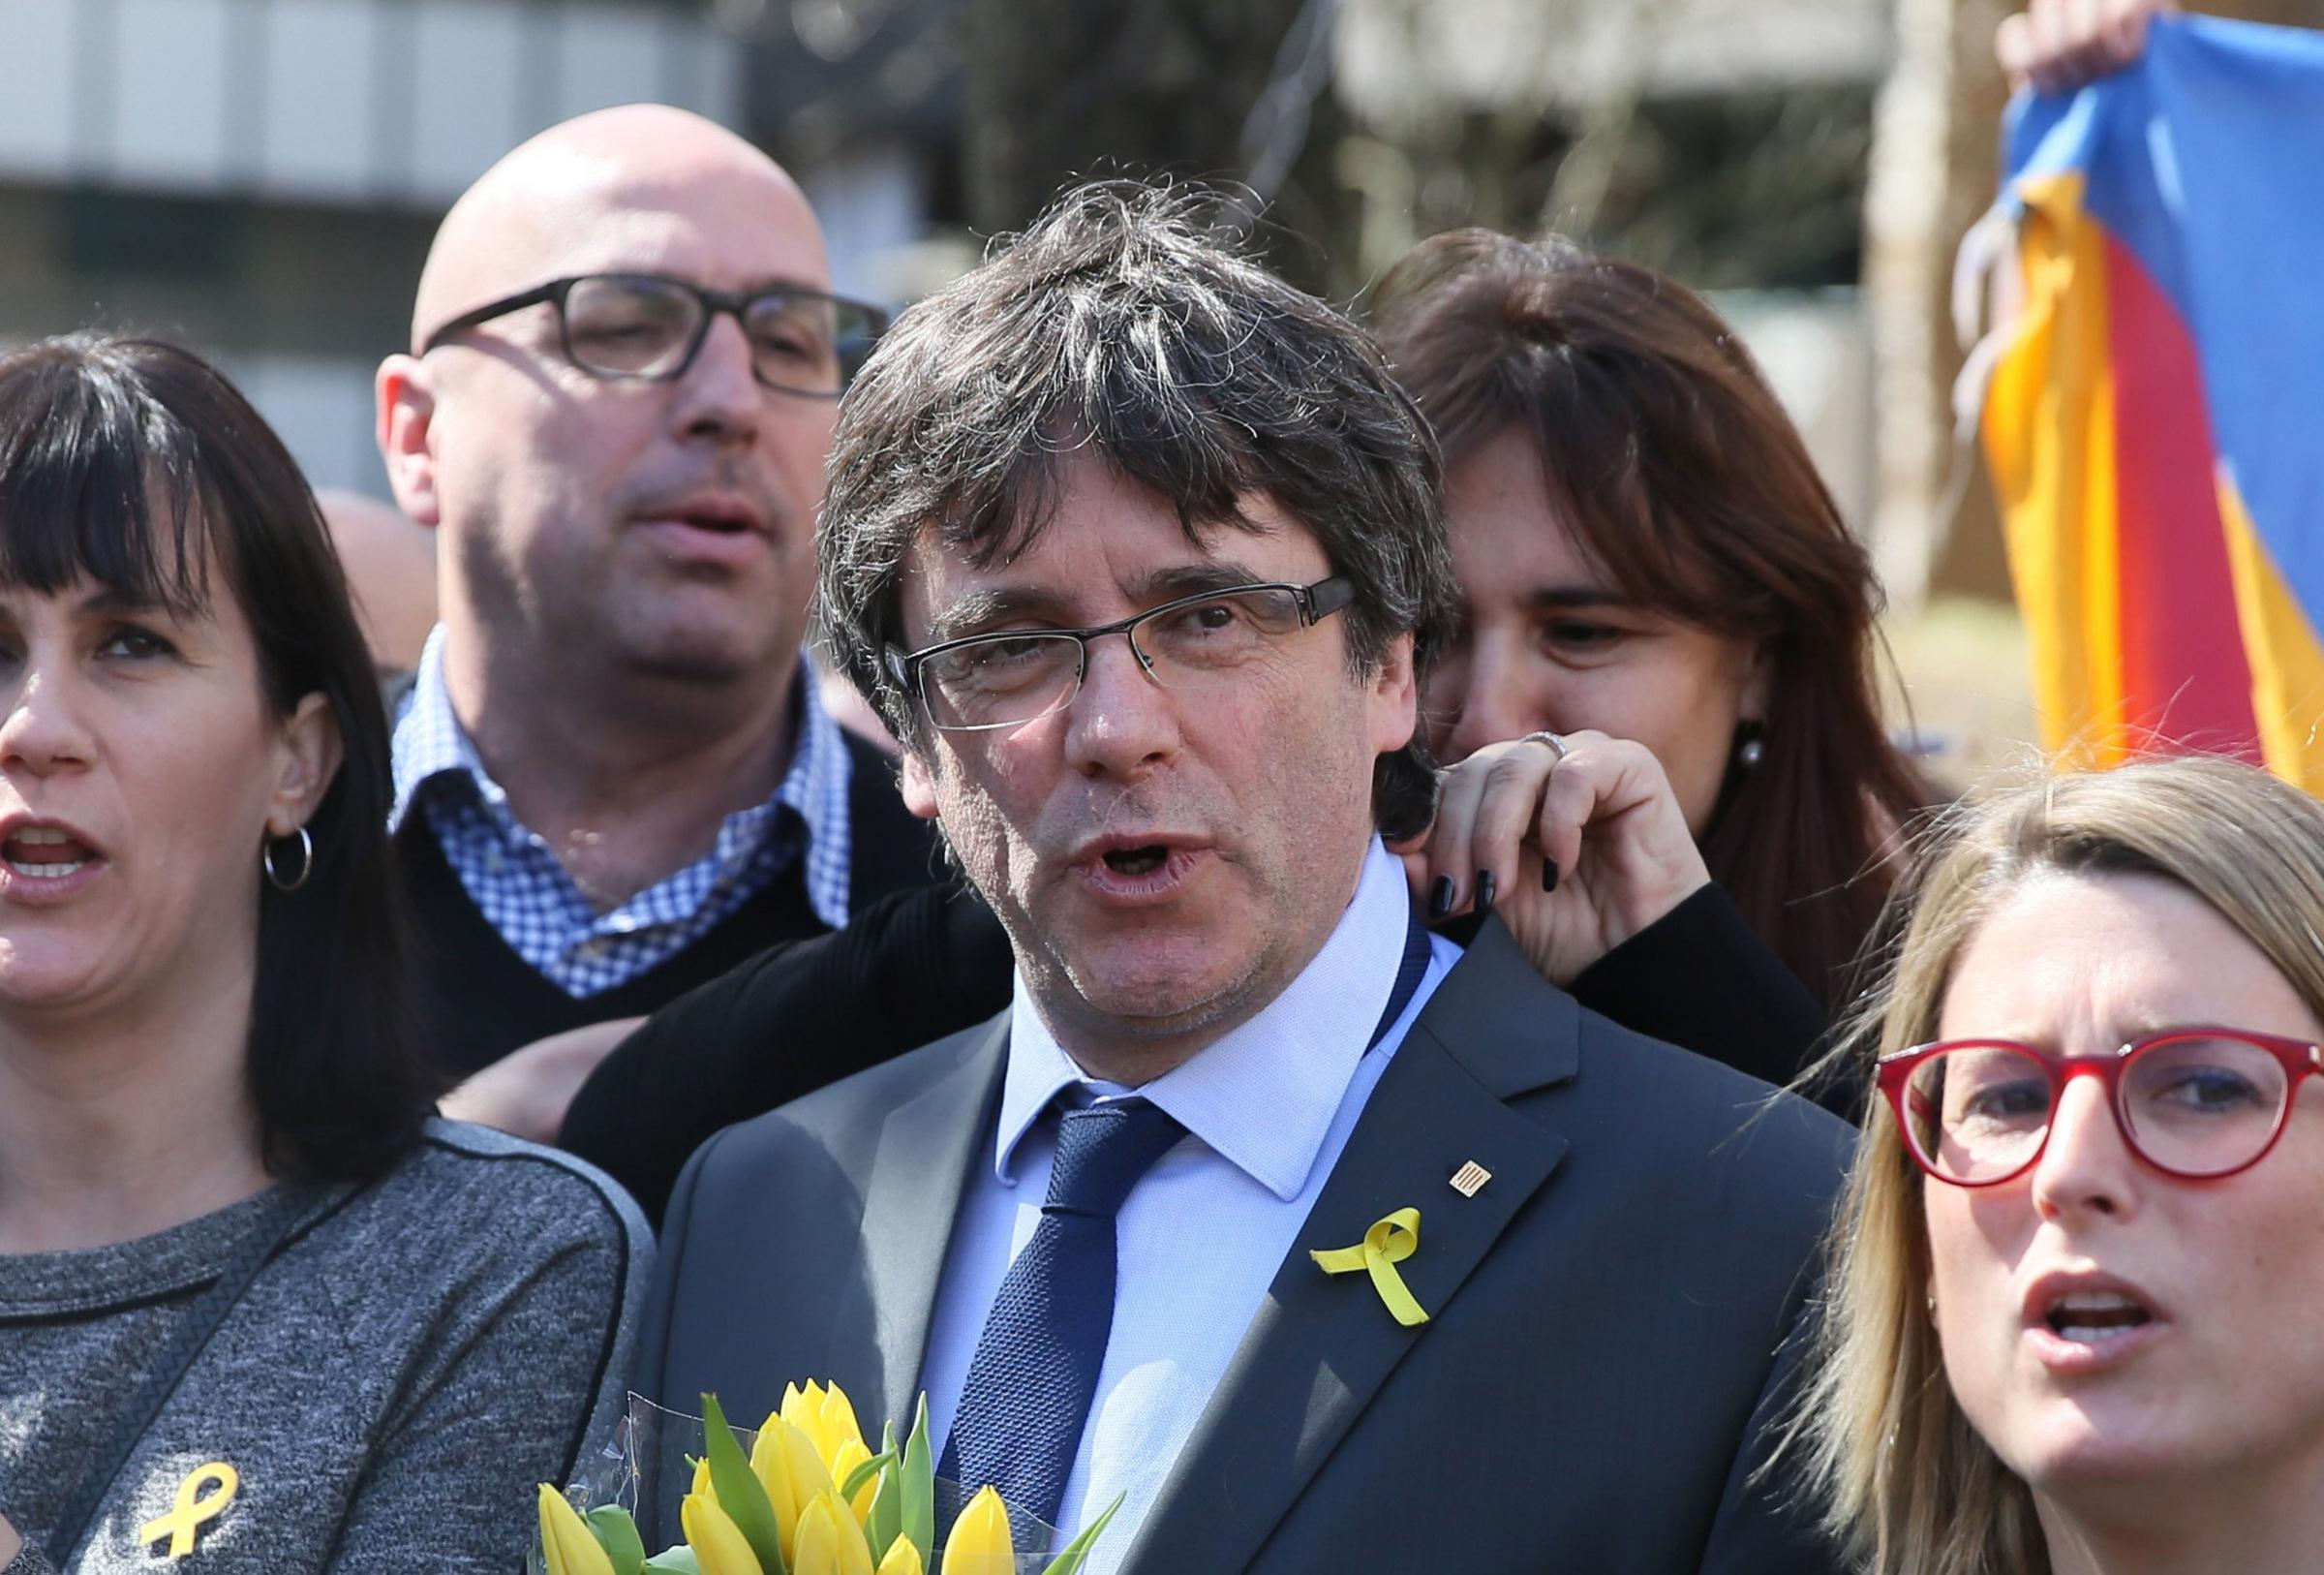 Puigdemont was released on Friday pending a ruling on his extradition and has is now living in Berlin